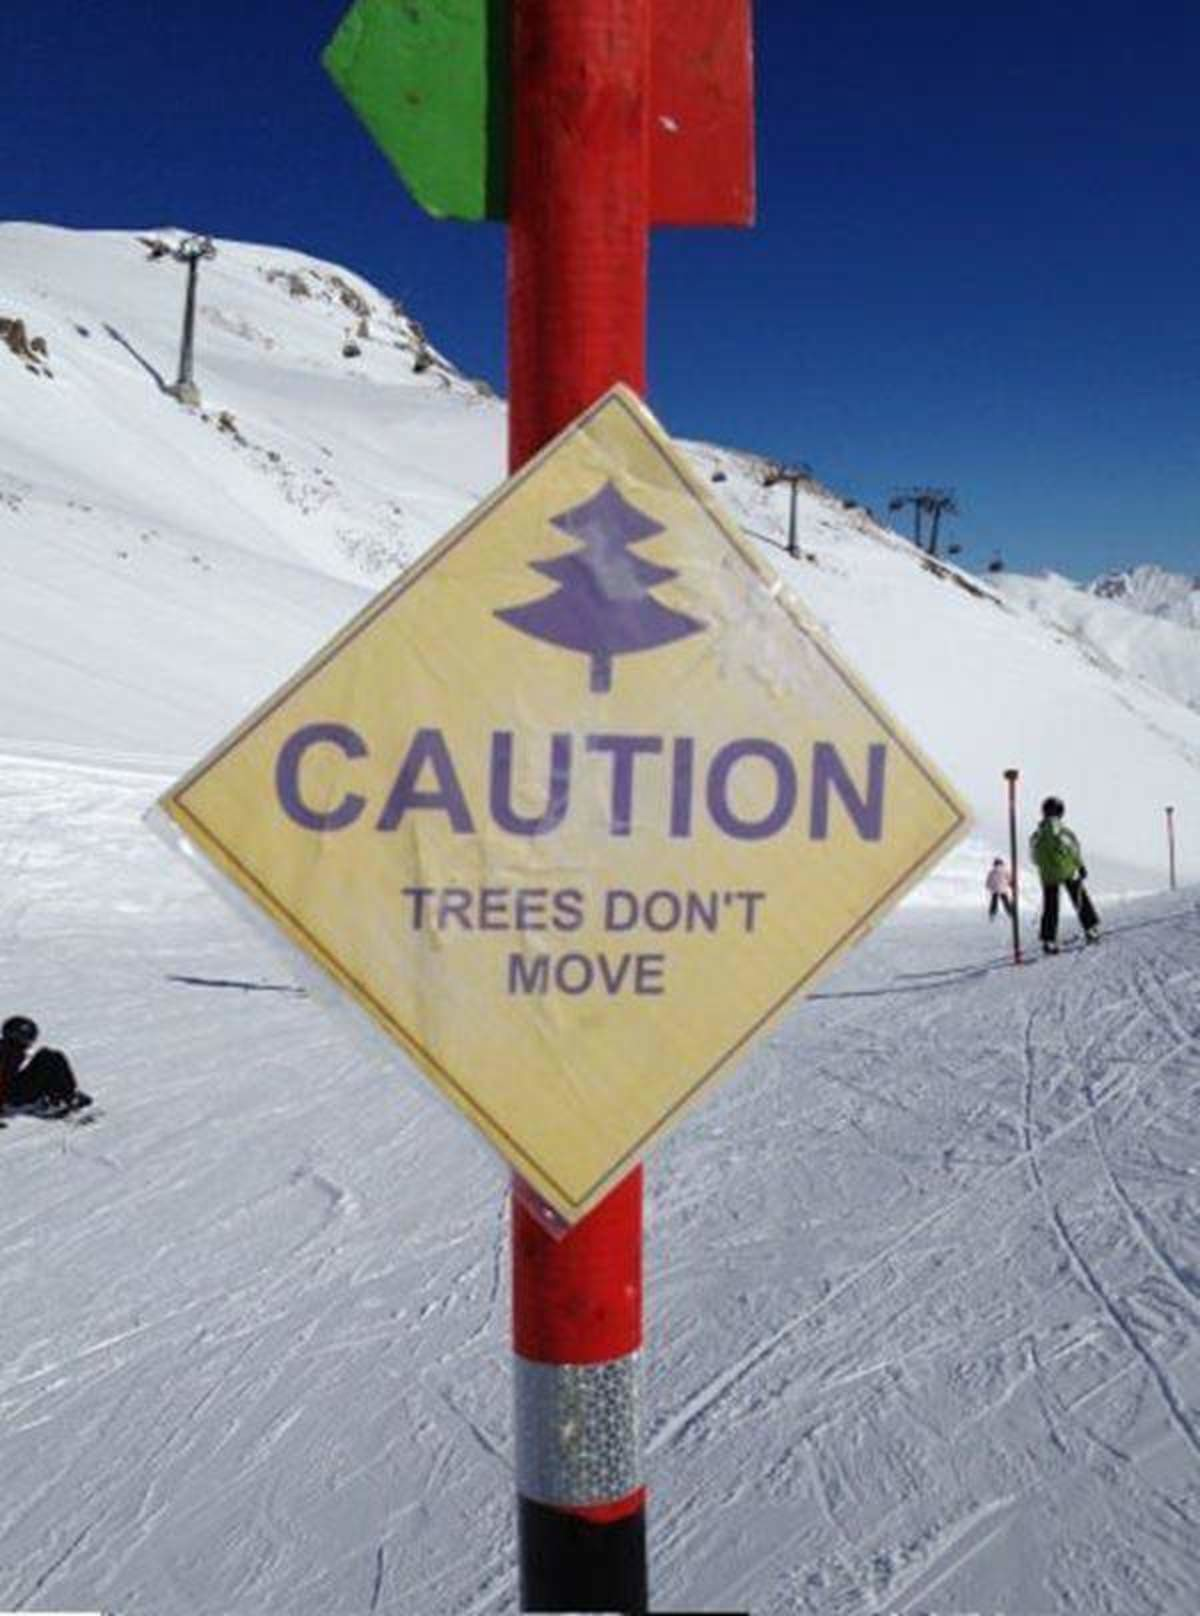 caution trees don't move.jpg